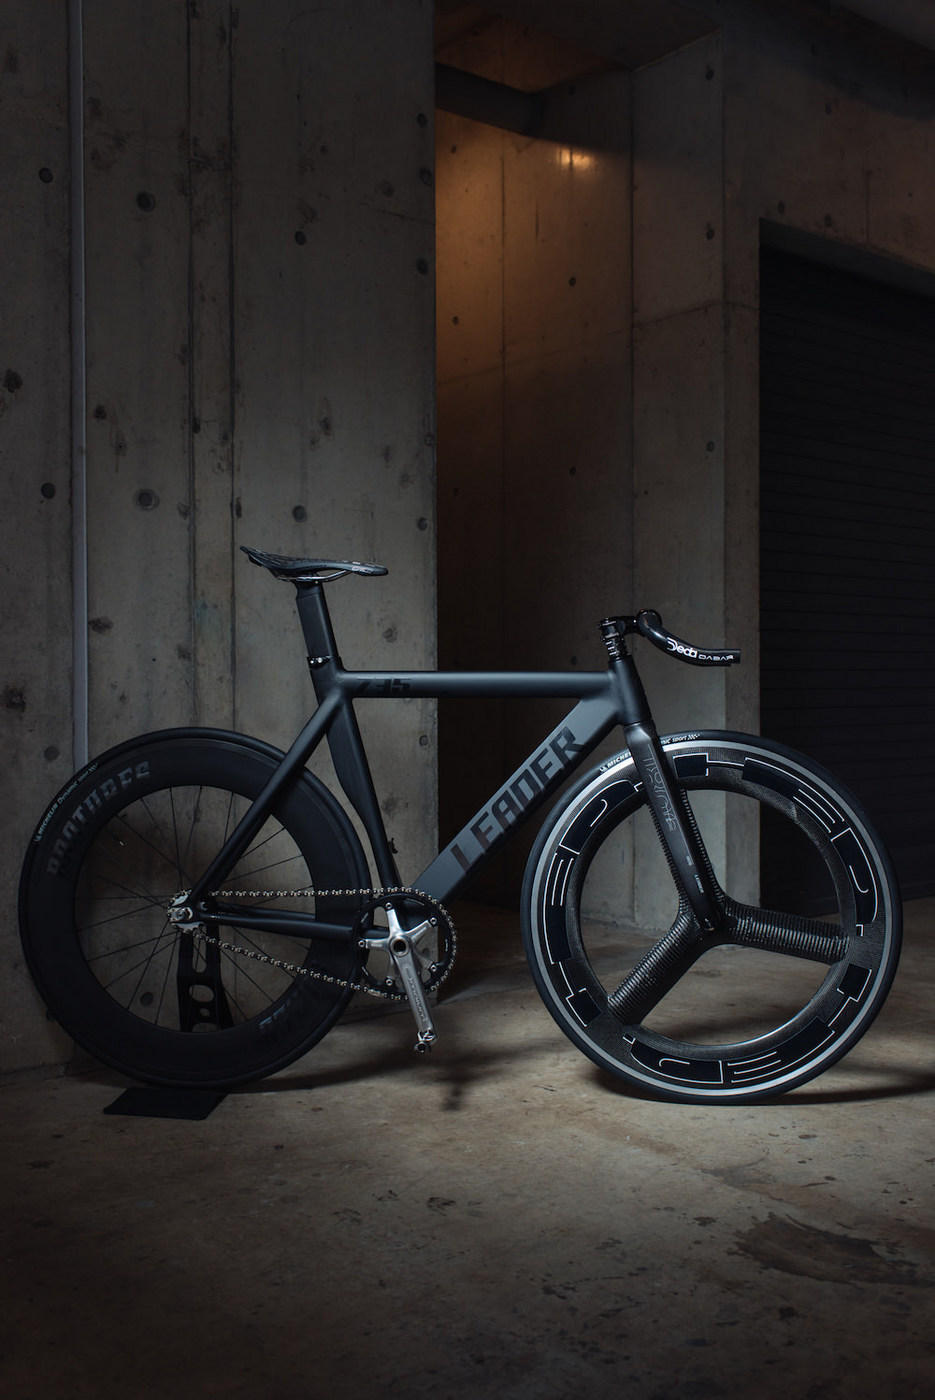 BROTURES、LEADERBIKES、ブローチャーズ、リーダーバイク、HED、カーボンホイール、